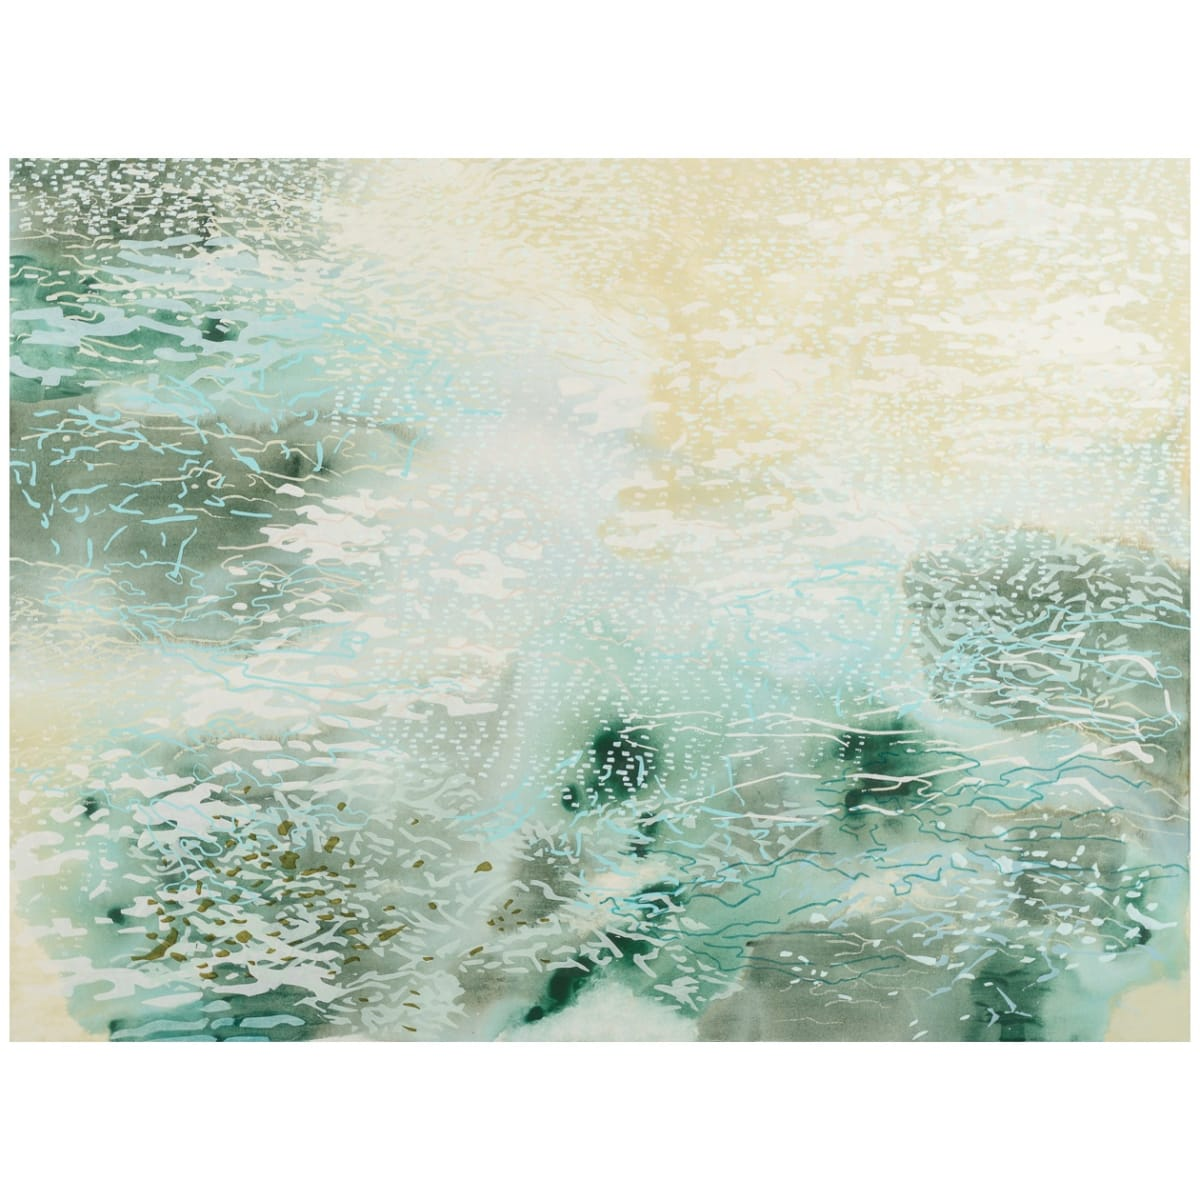 "Laura Fayer's ""Coral Grove"" done with acrylic and rice paper on canvas in various shades of cream, green, and white. The acrylic gradient takes up the whole first layer while the rest has various pieces of rice paper sprinkled."